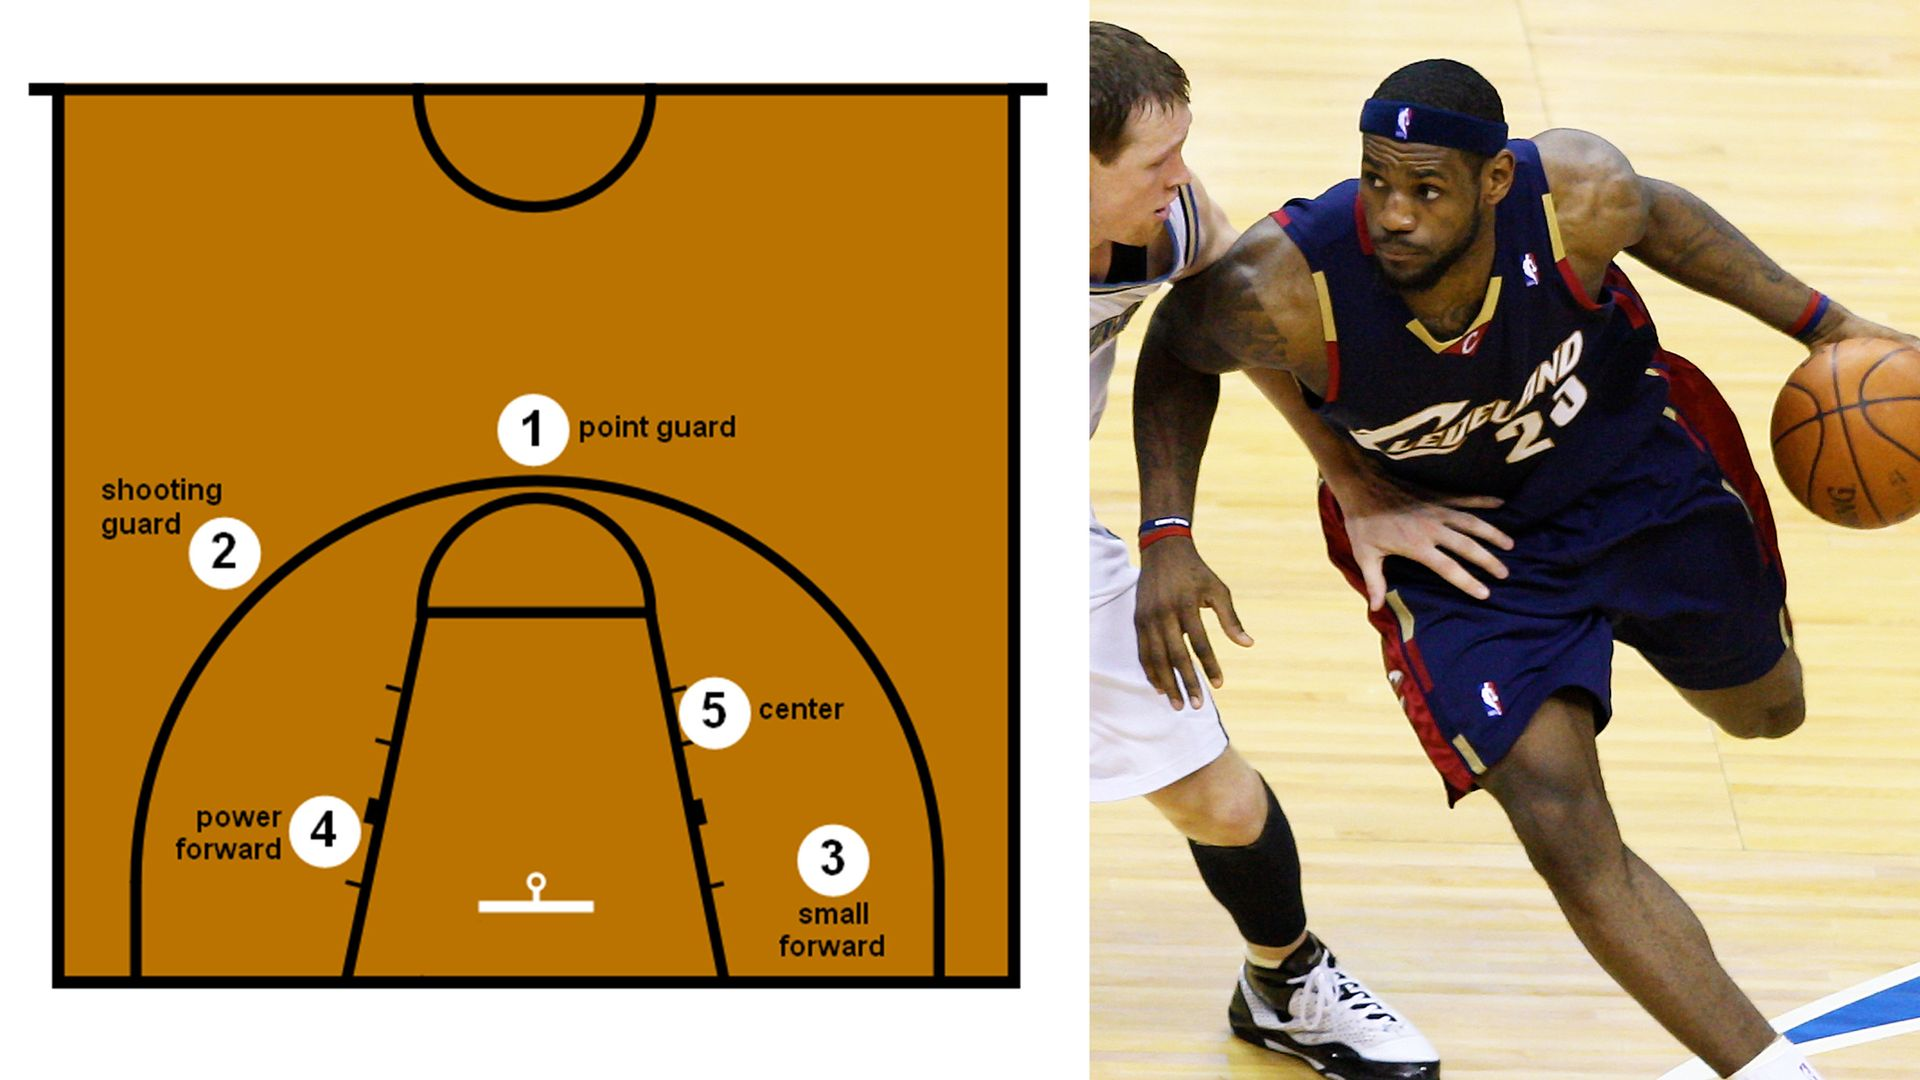 Can We Guess What Position You Played In Basketball